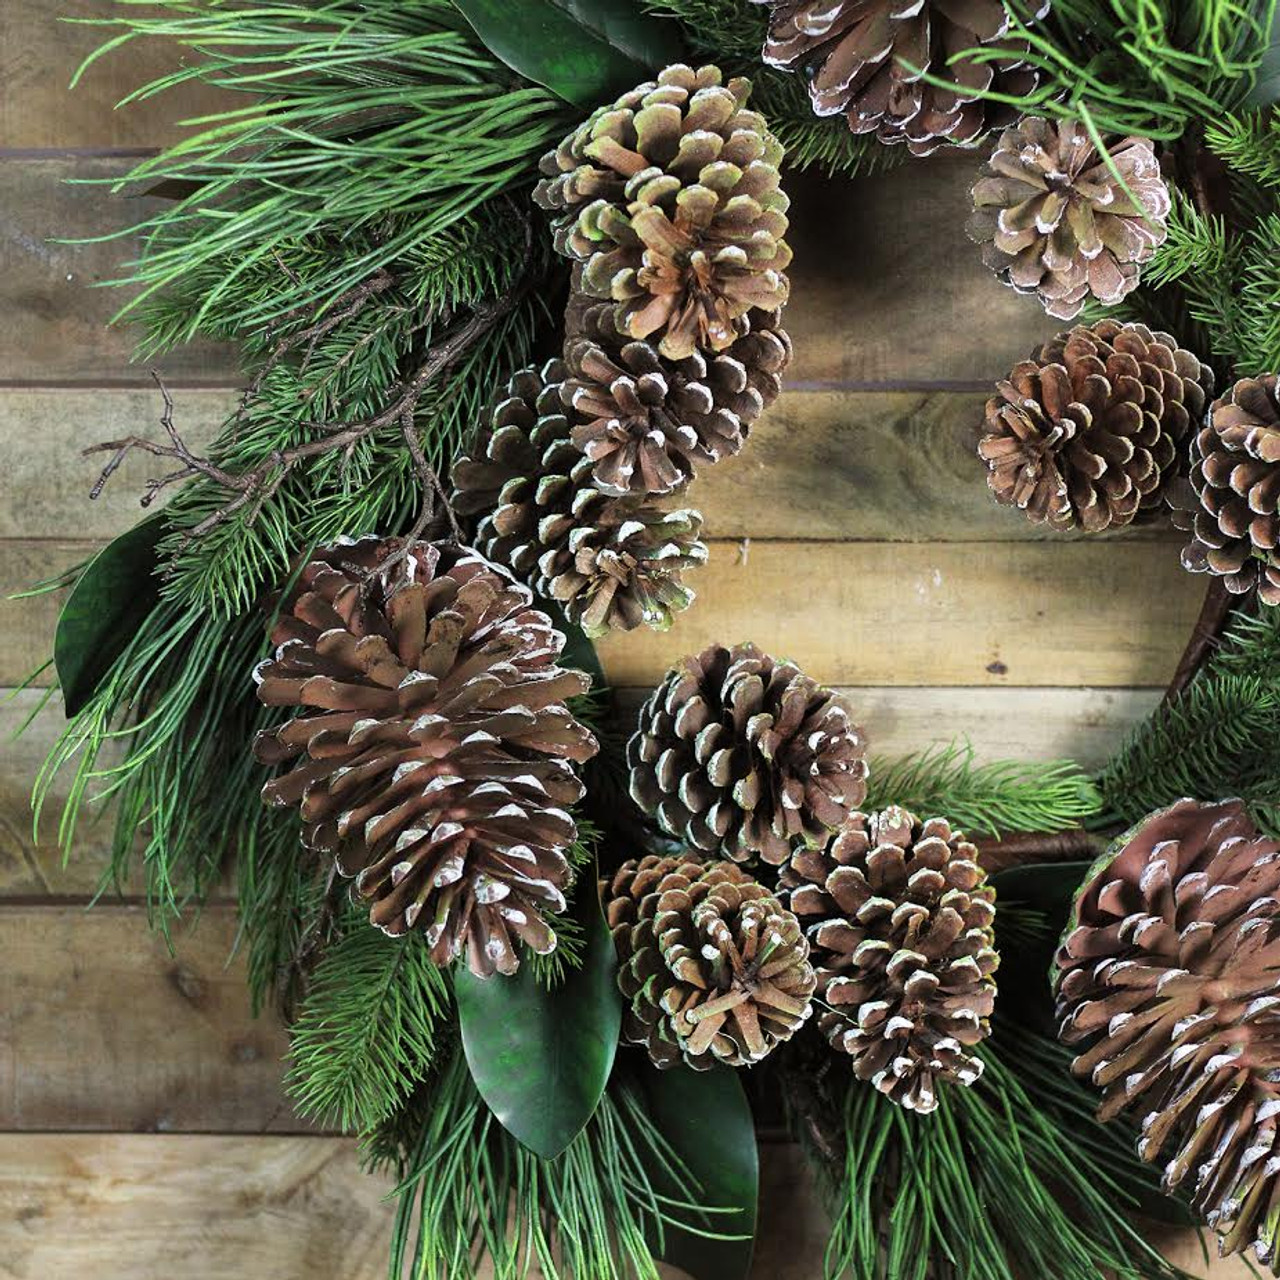 28 monalisa mixed pine with large pine cones and foliage christmas wreath unlit 32283274 - Decorating Large Pine Cones For Christmas